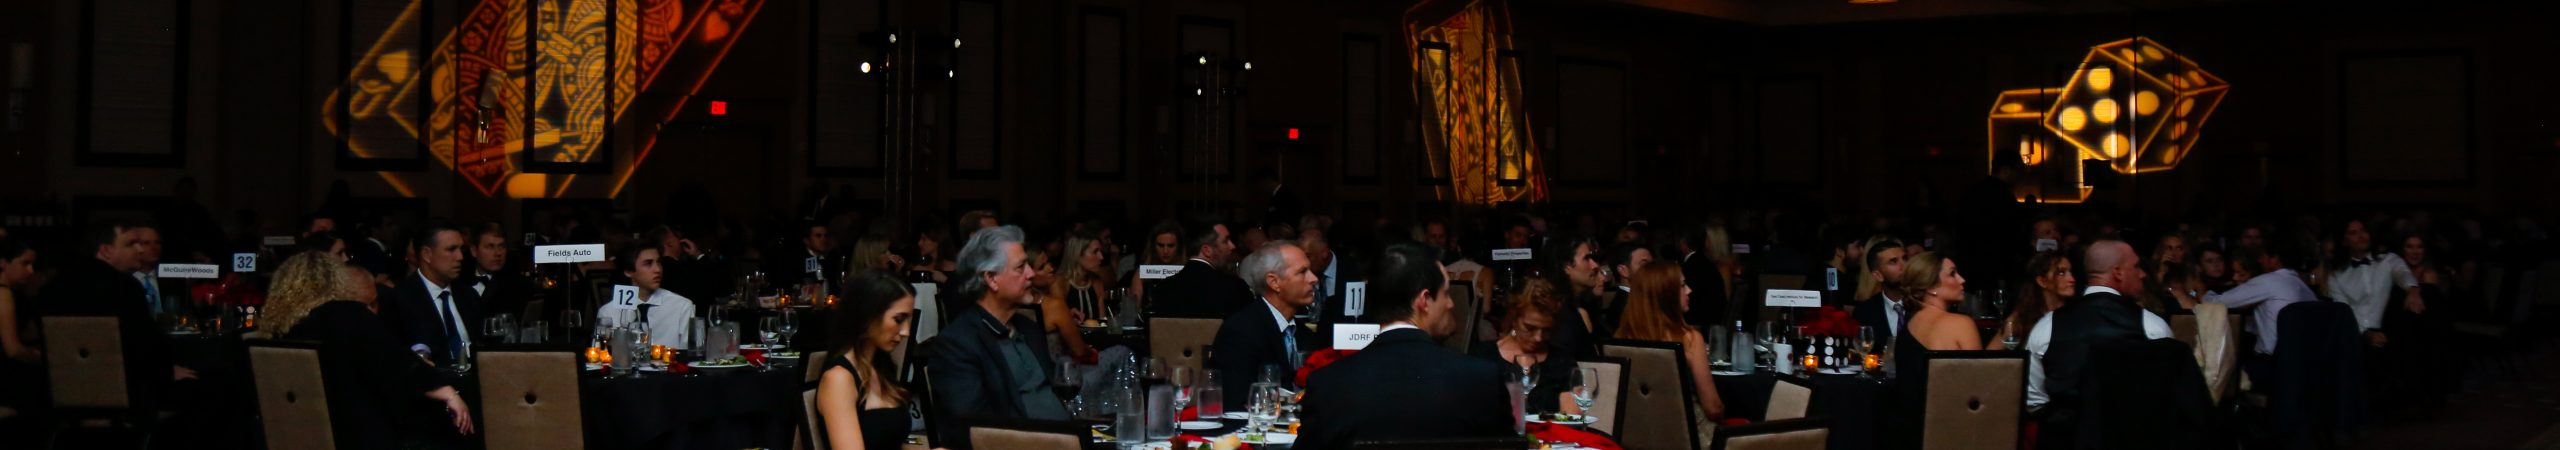 JDRF 19th Annual Miracles Gala- Kings and Queens